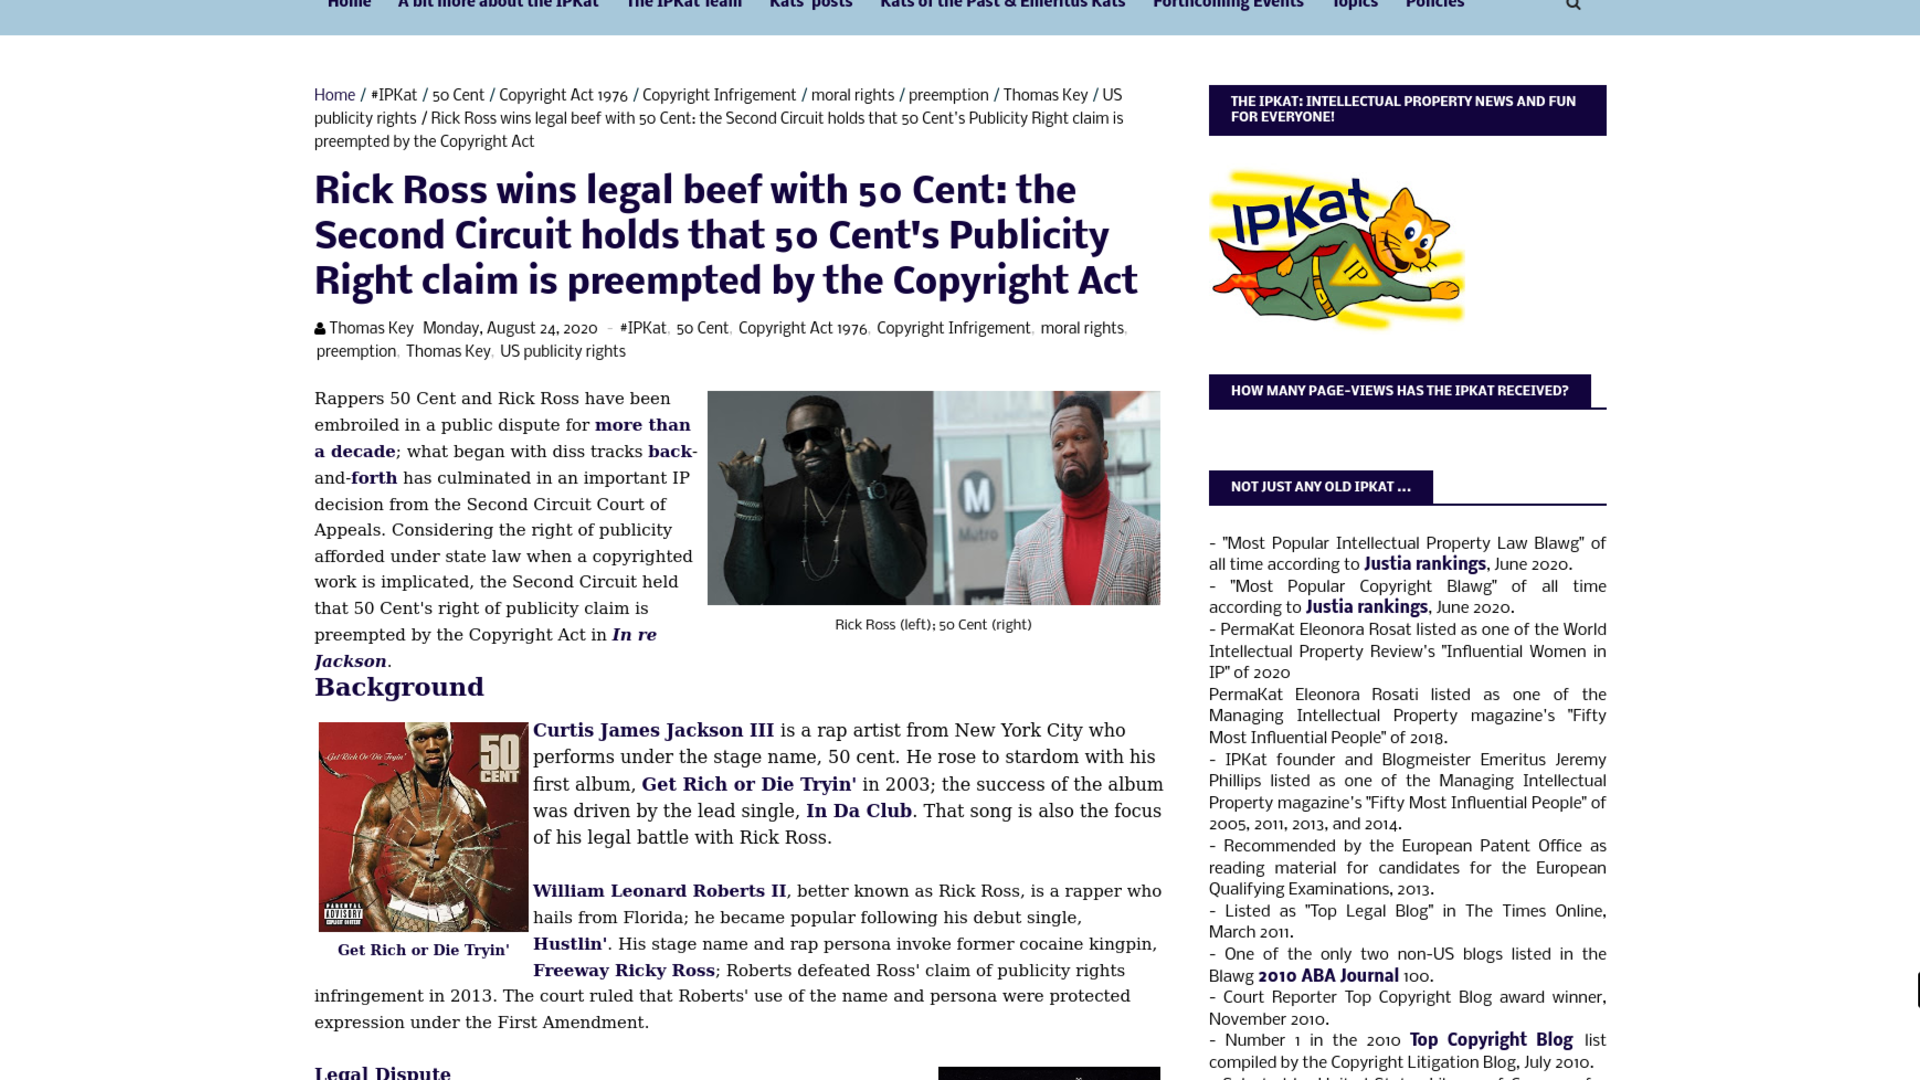 Fairness Rocks News Rick Ross wins legal beef with 50 Cent: the Second Circuit holds that 50 Cent's Publicity Right claim is preempted by the Copyright Act